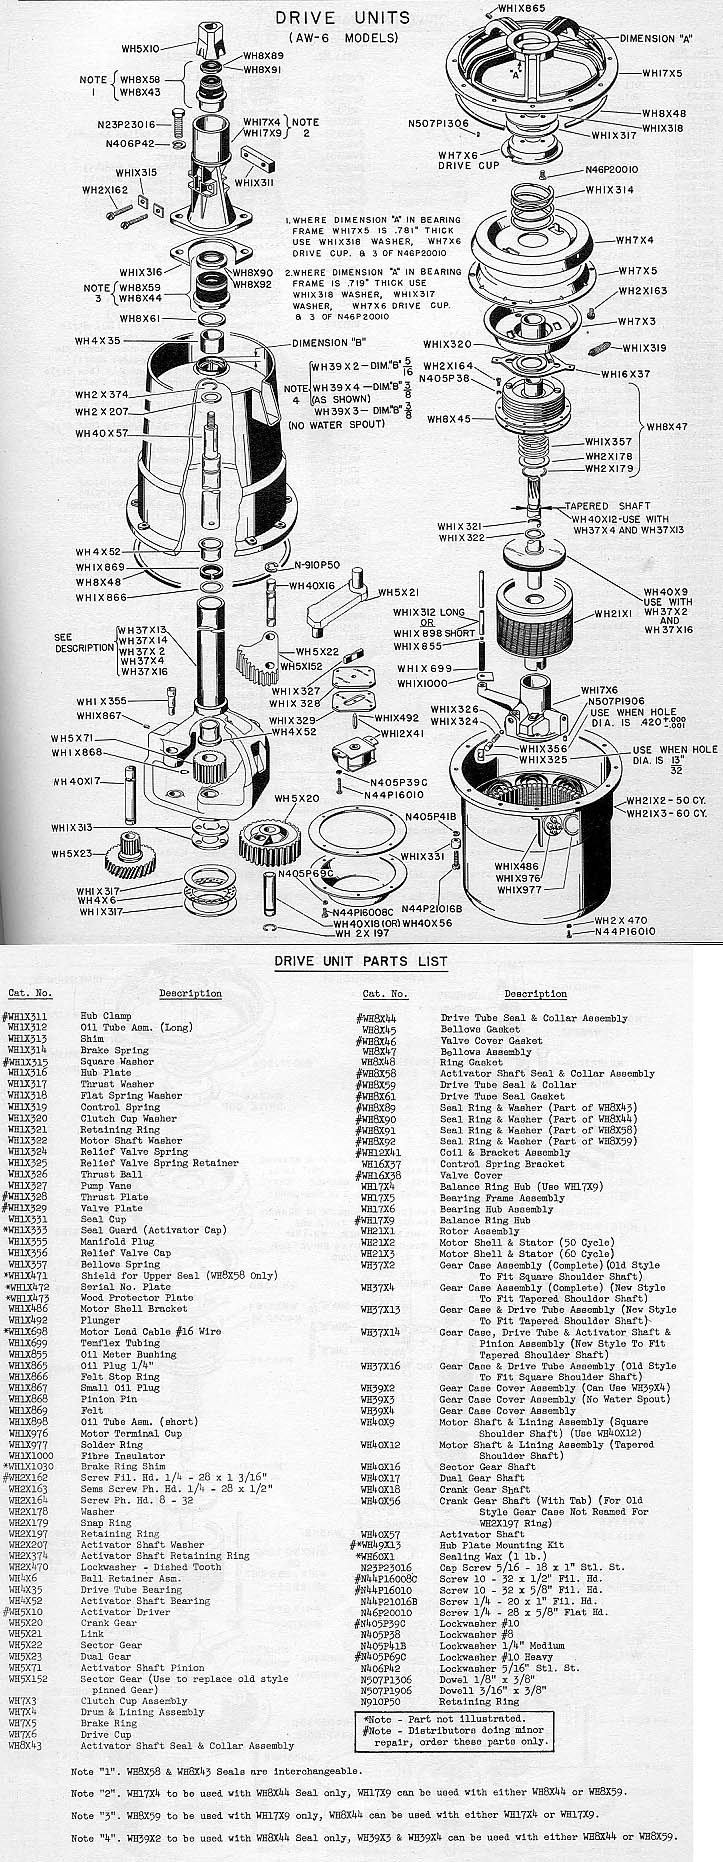 hight resolution of 1947 general electric aw6 washer transmission explanation 1951 ge washer i hope this is the before shot chart showing water flow in 1958 ge filter flo